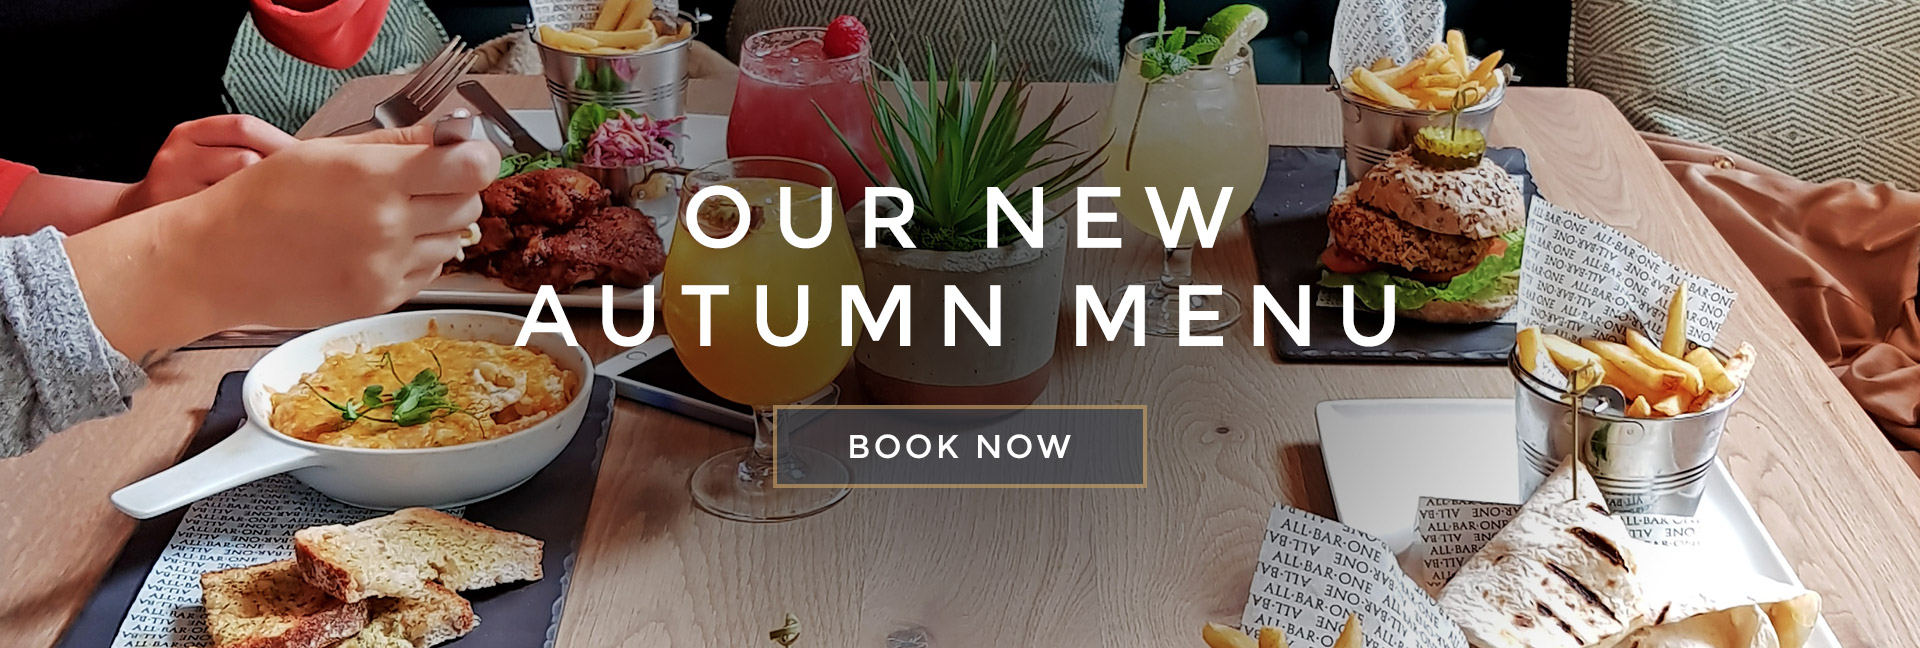 Our new Autumn menu at All Bar One Manchester - Book now